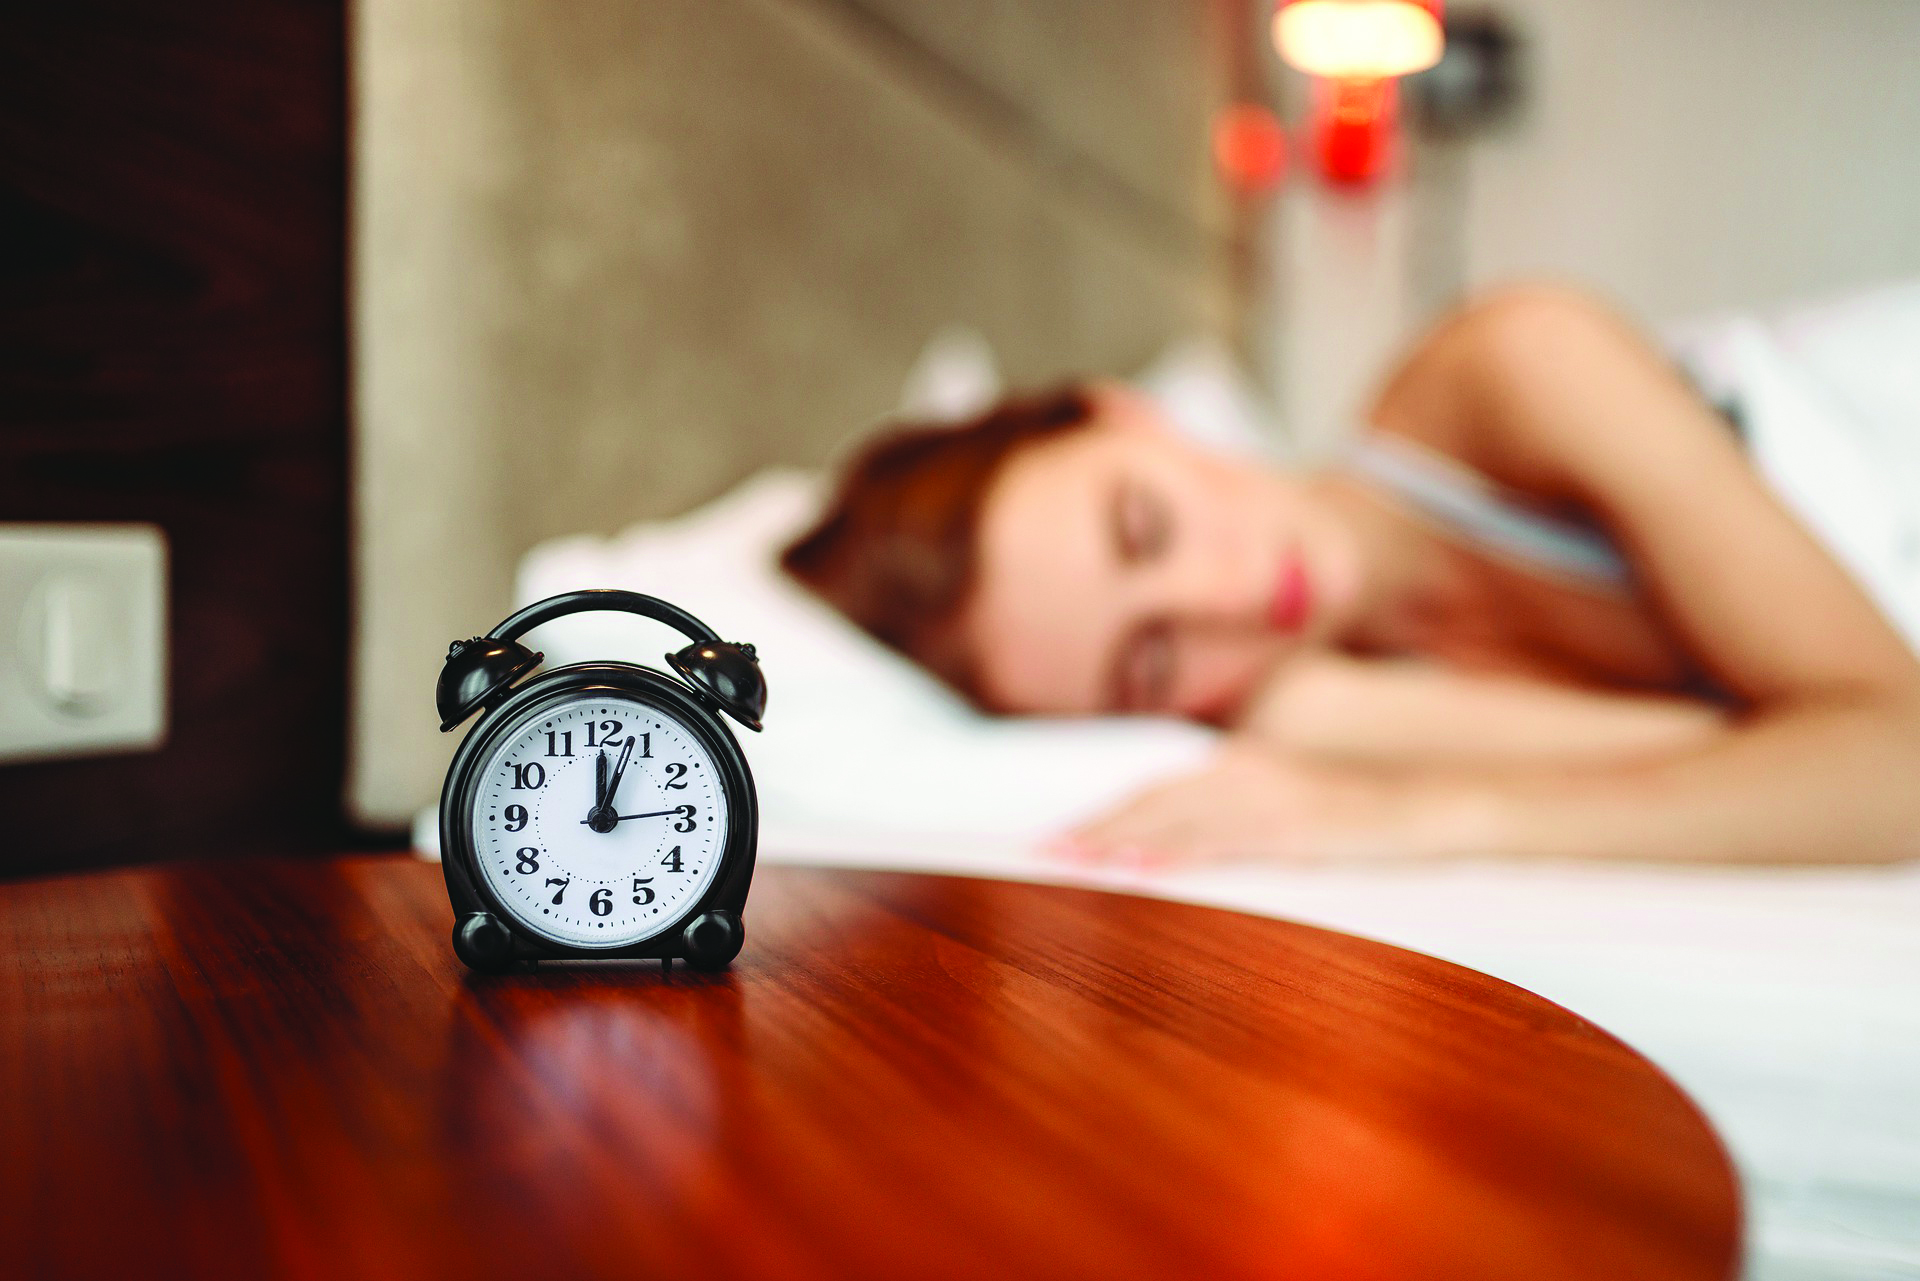 Daylight Saving Time: Why Does it Exist?